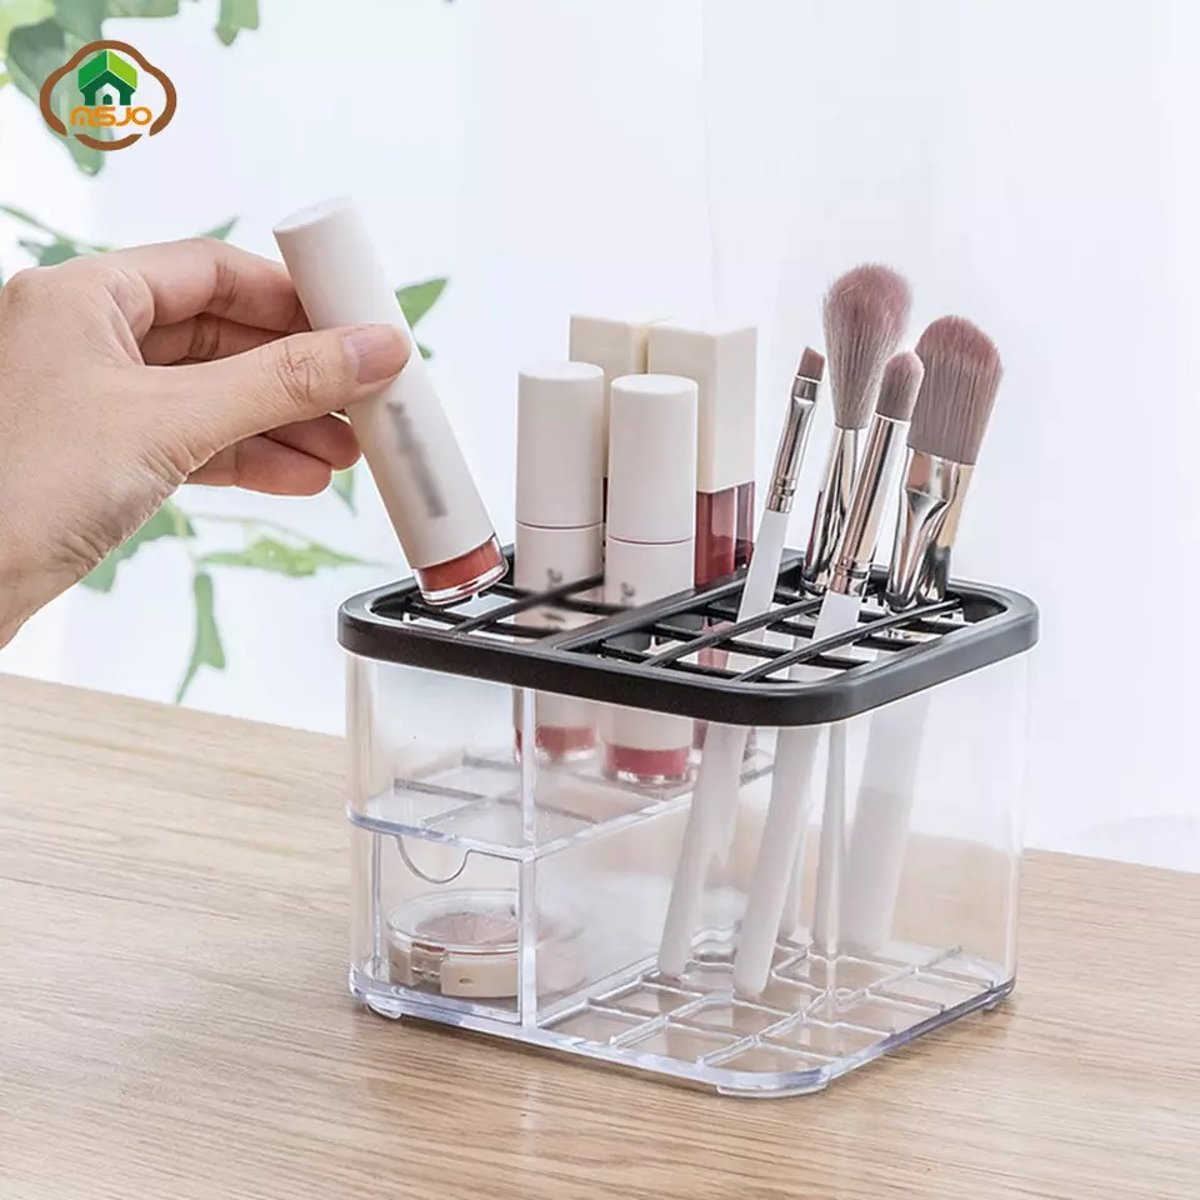 Acryl make-up storage box | Sorteerdoos | Make-up organizer | Transparant